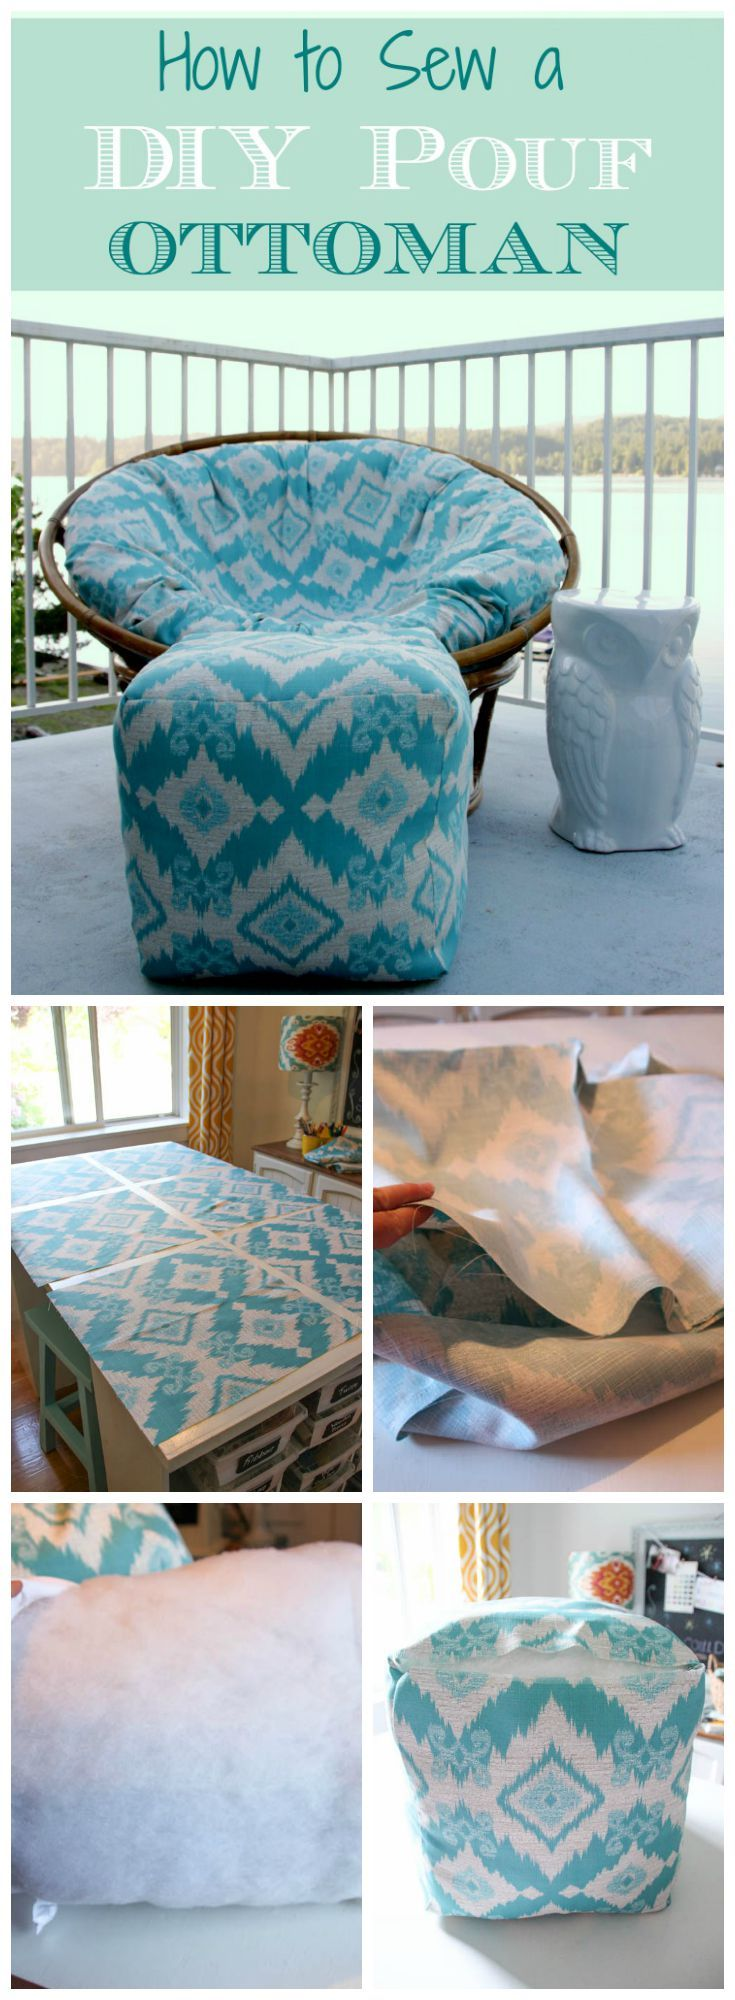 Diy pouf ottoman - How To Sew A Diy Pouf Ottoman Indoor Or Outdoor